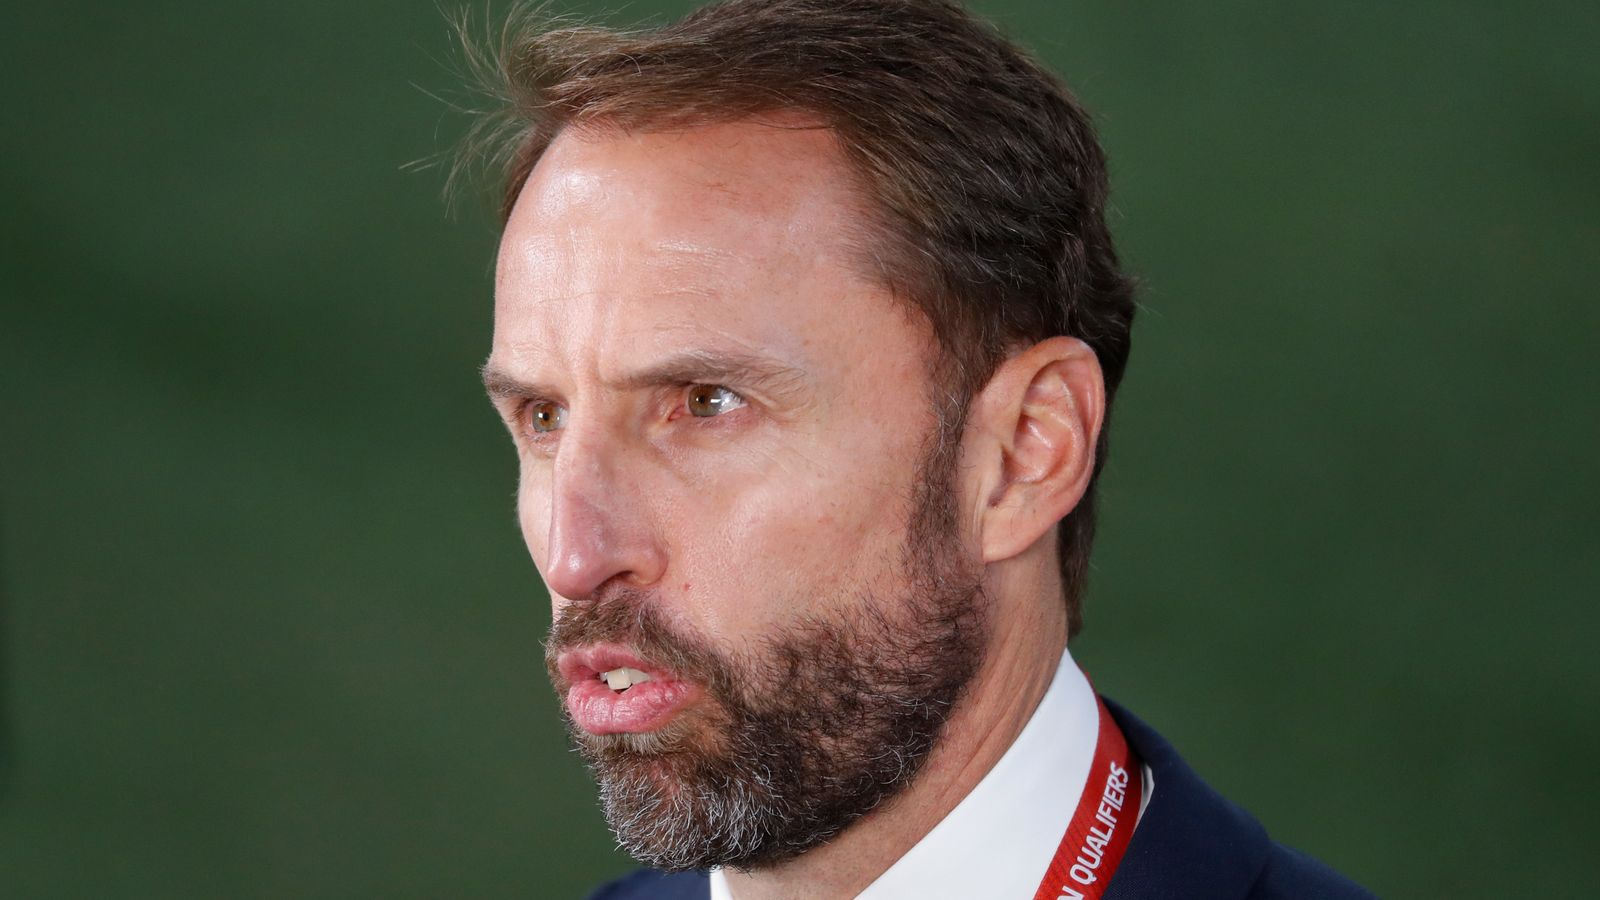 England manager Gareth Southgate 'open-minded' about proposal to stage World Cup every two years - Sky Sports